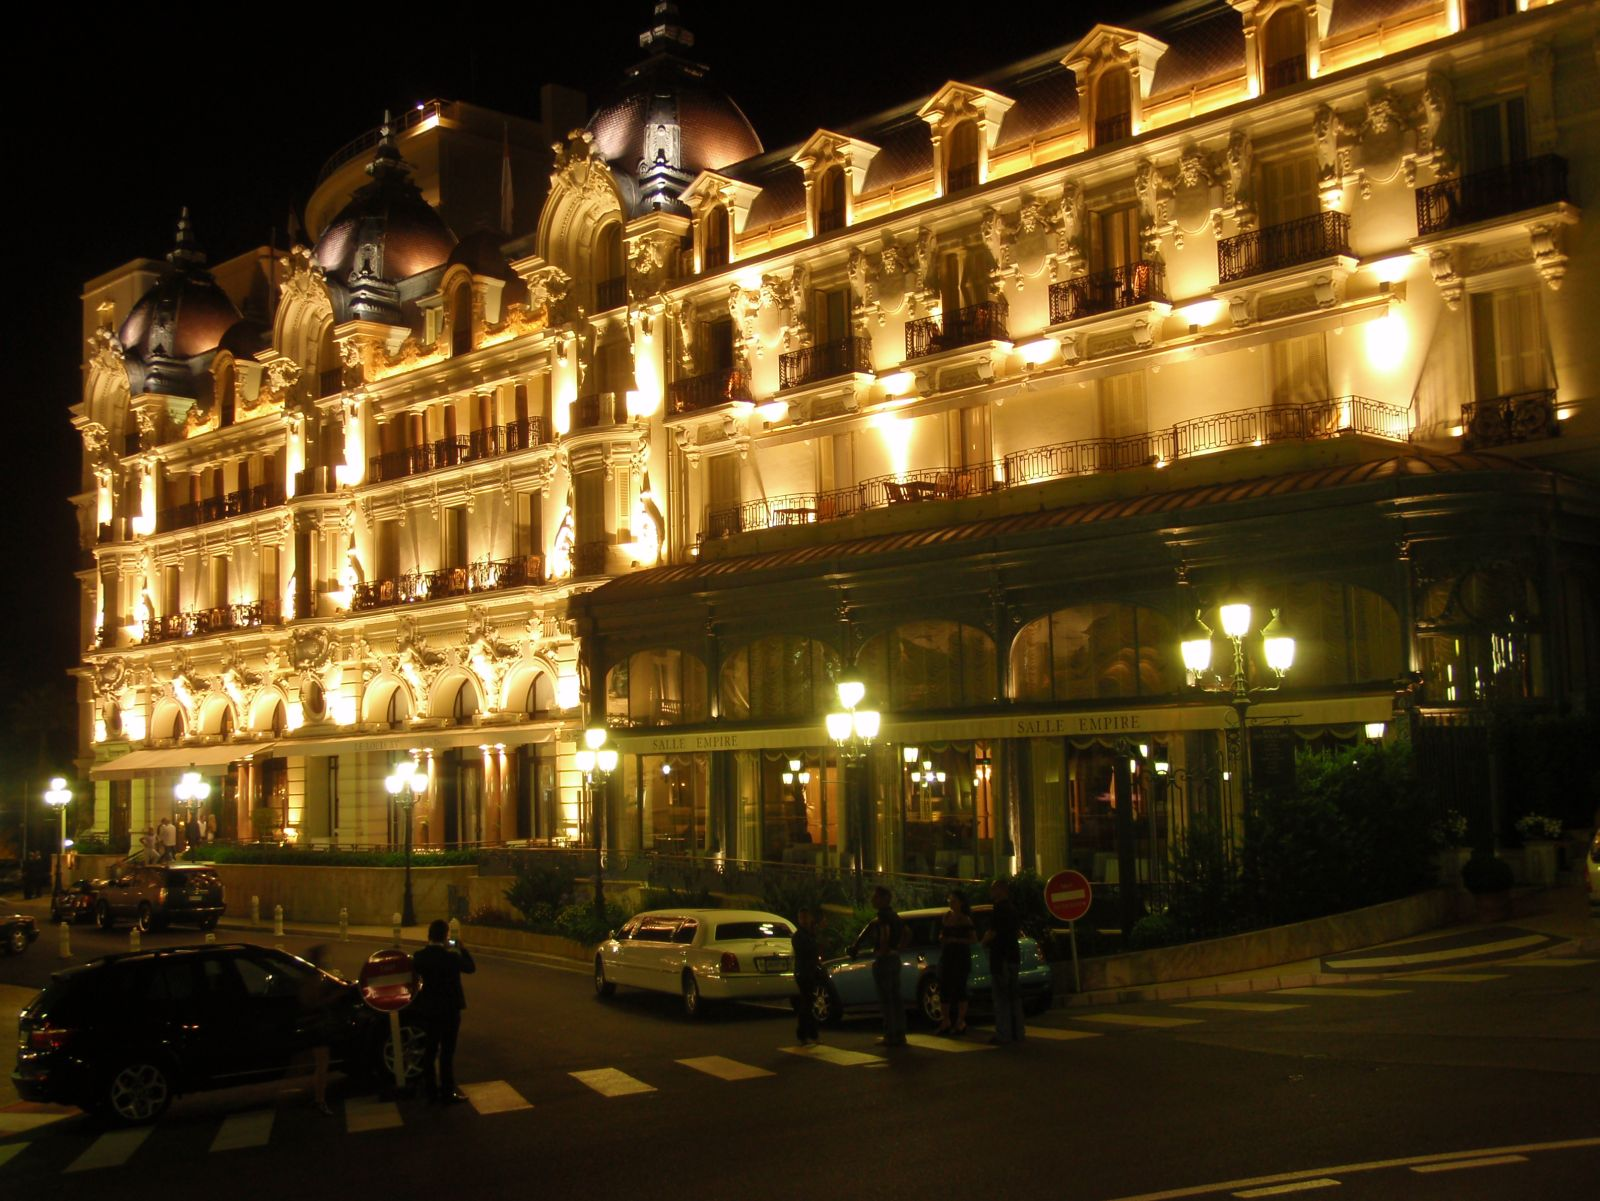 The luxury Hotel de Paris,